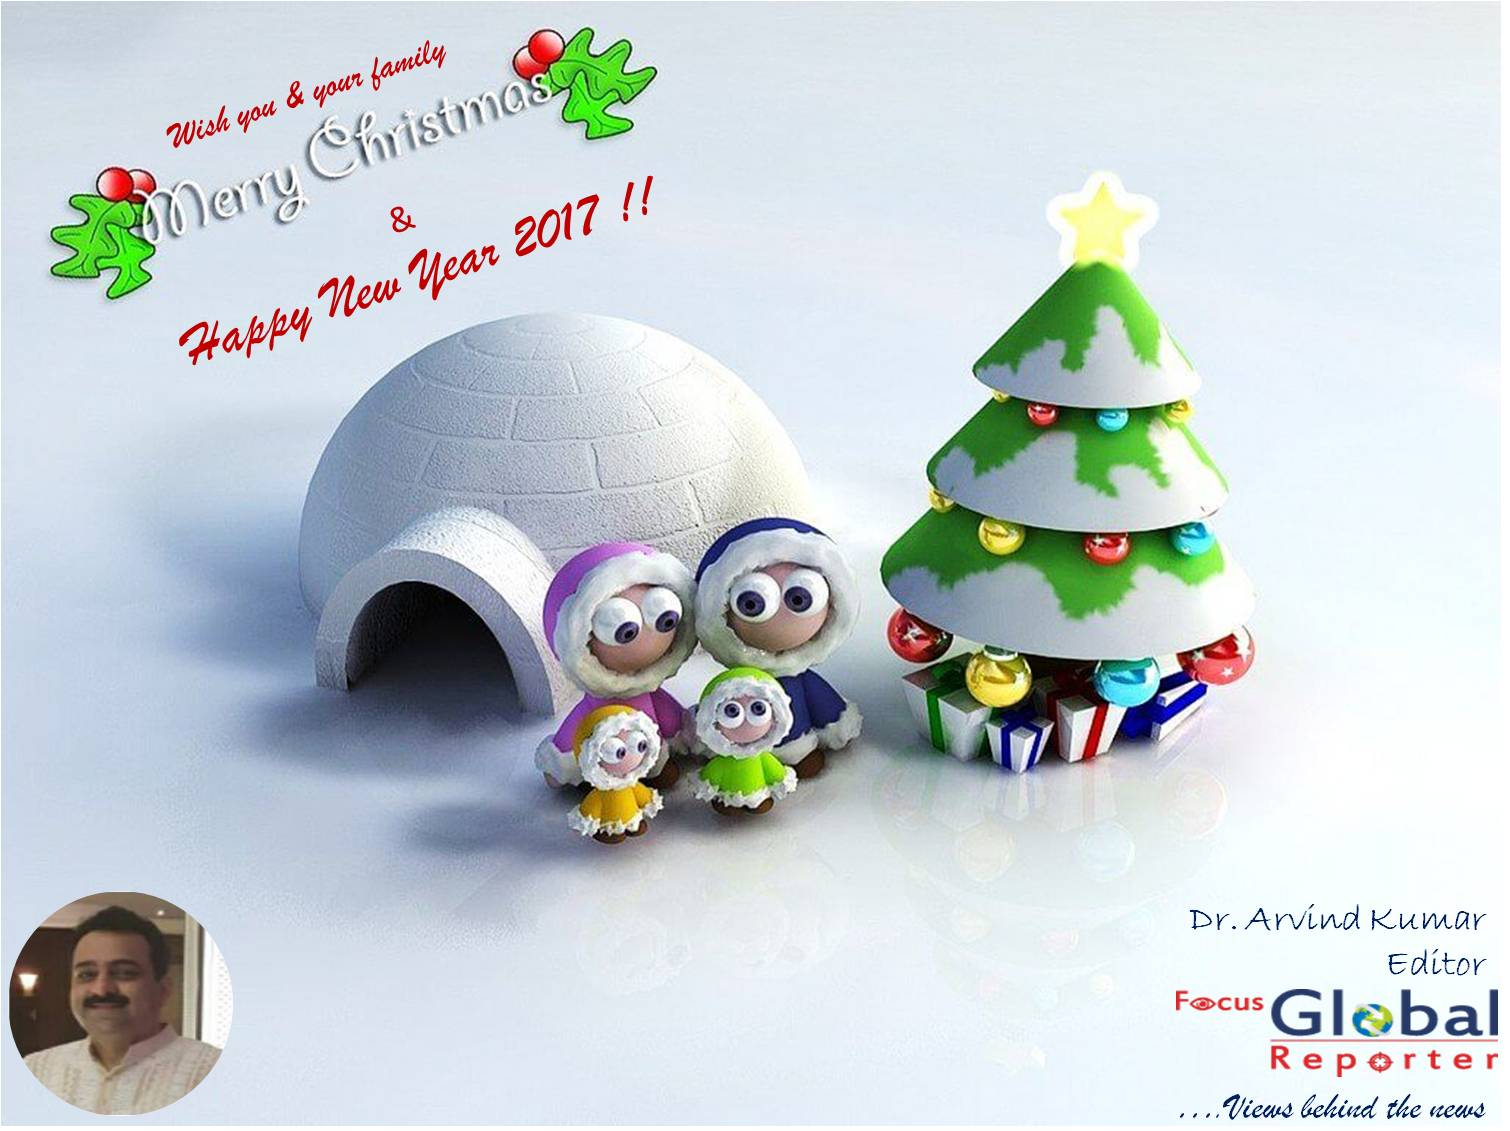 wish you and your family marry christmas happy new year 2017 focus global reporter